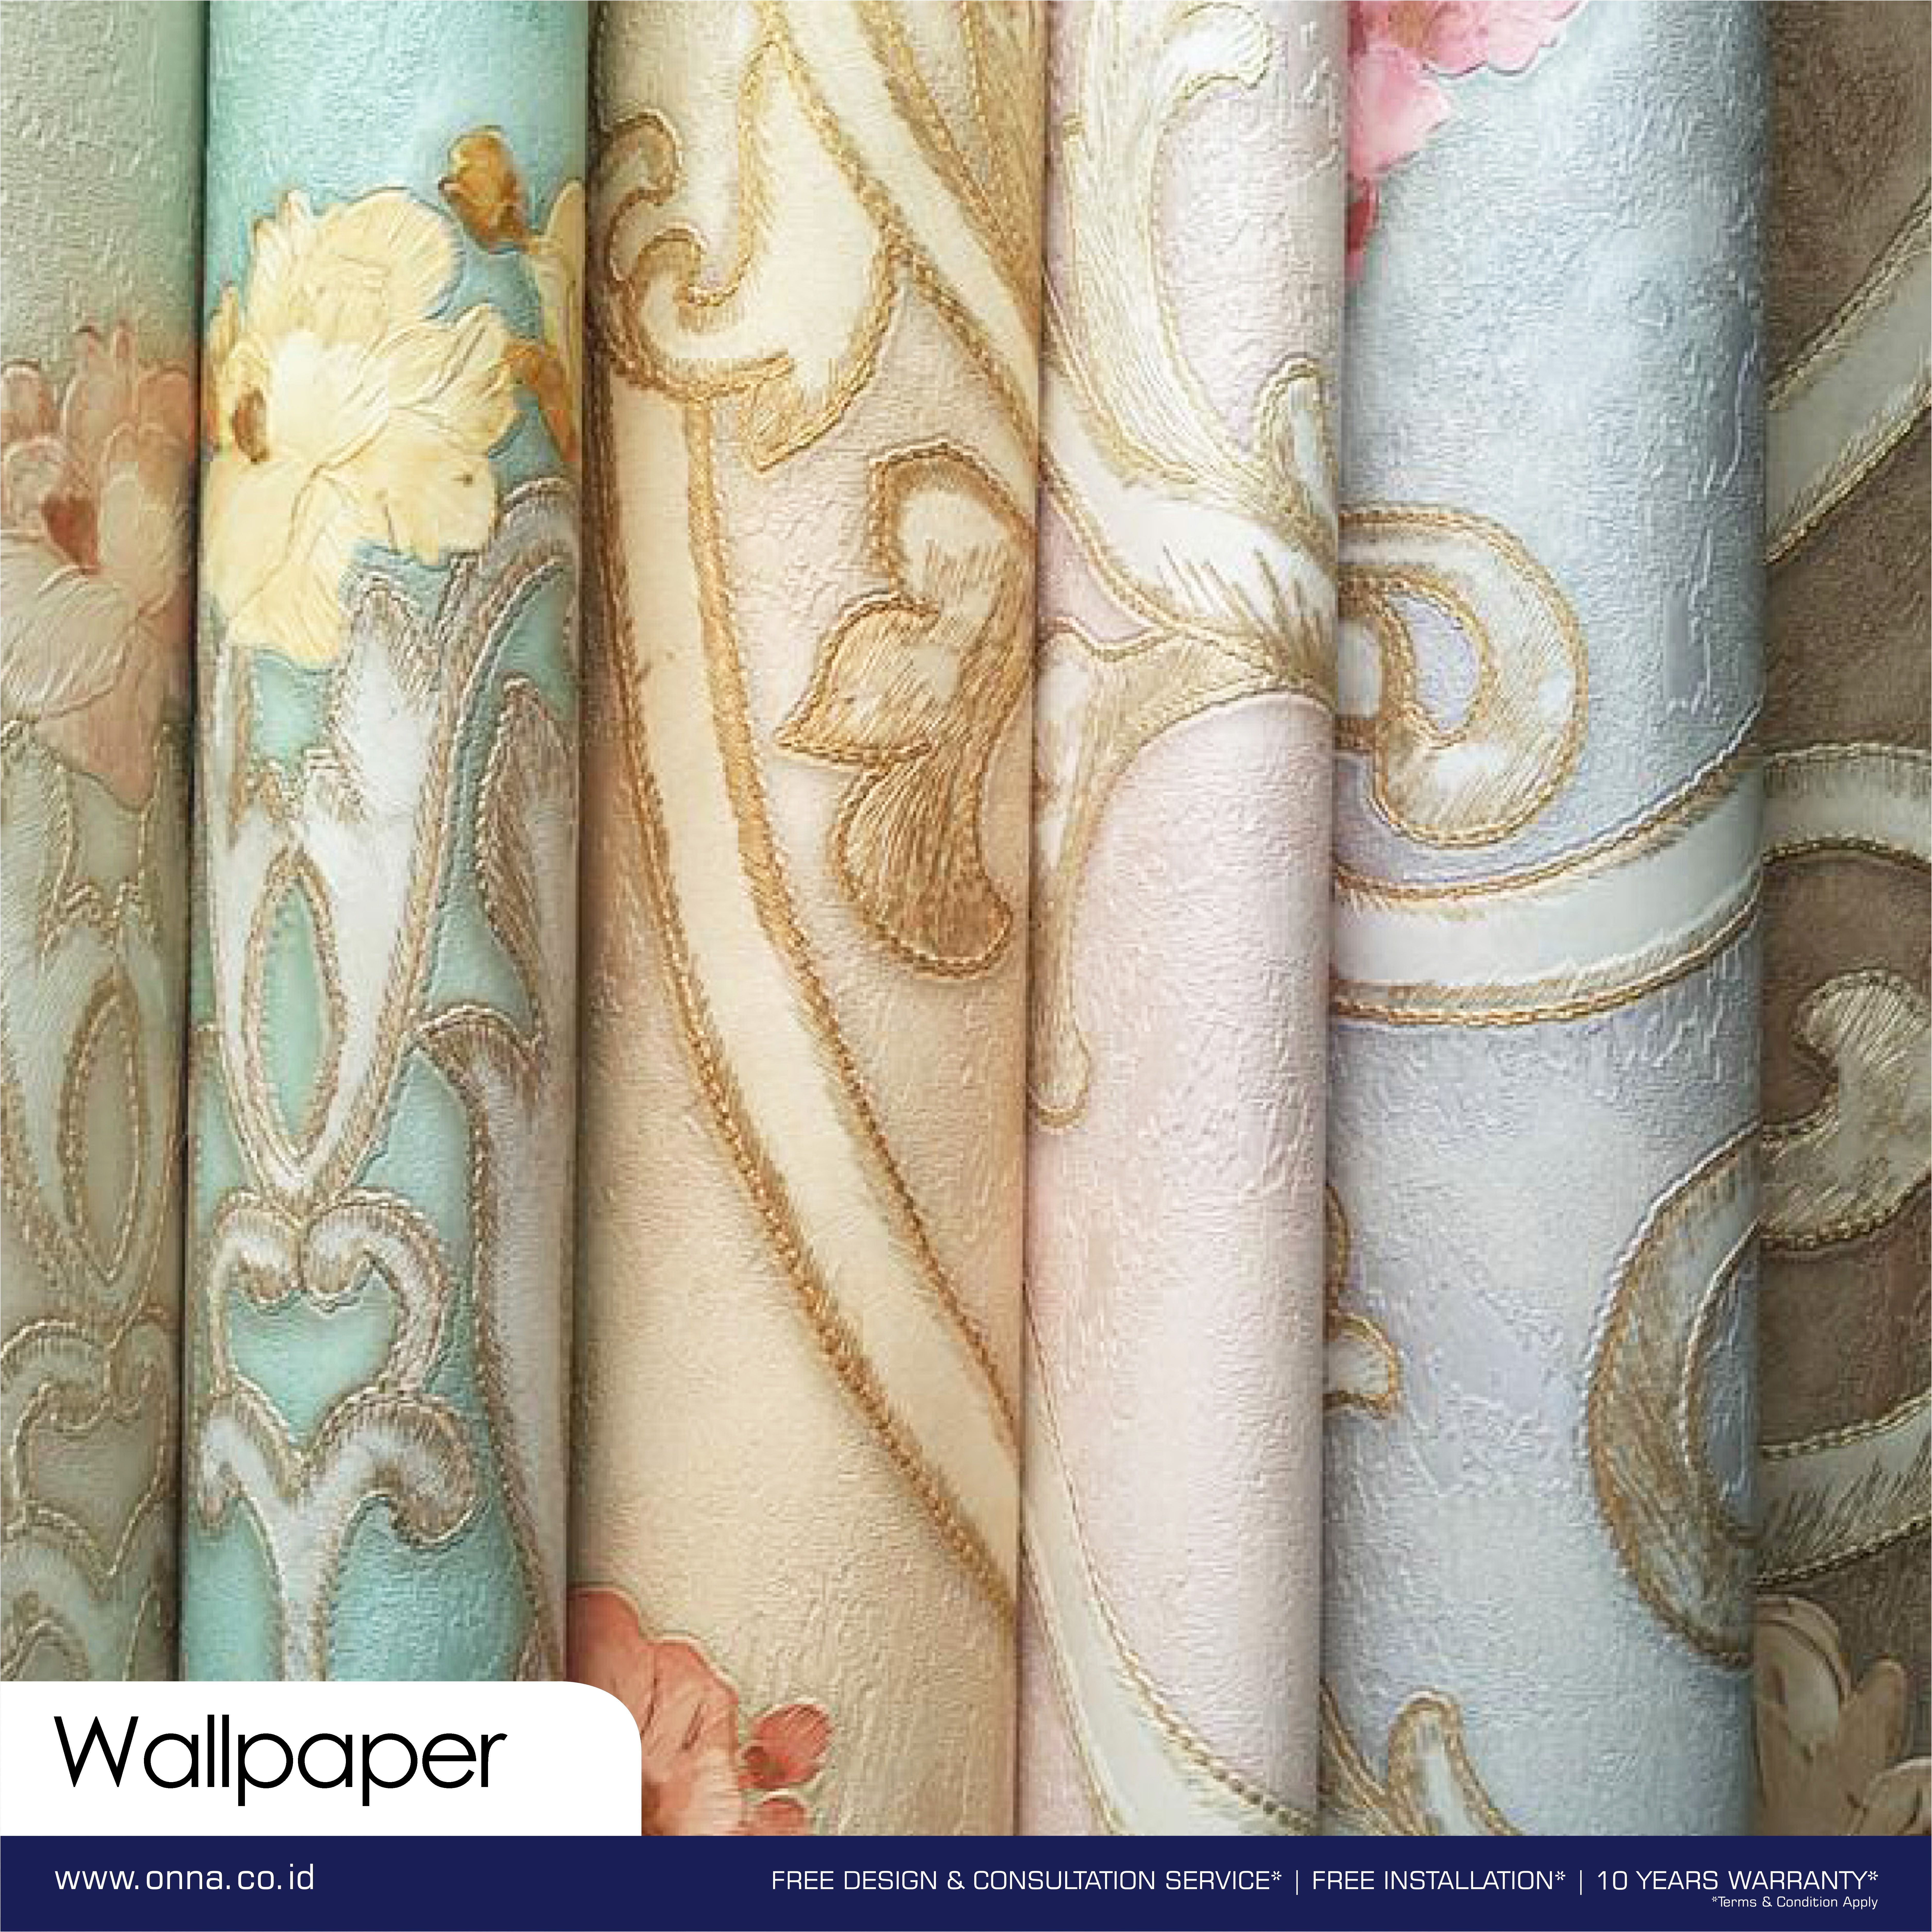 Minimum Effort Maximum Result Onna Wallpaper Wallpaper Comes In Variety Of Styles That Give You Lots Of Choices When Crafting A Onna Wallpaper Roller Blinds